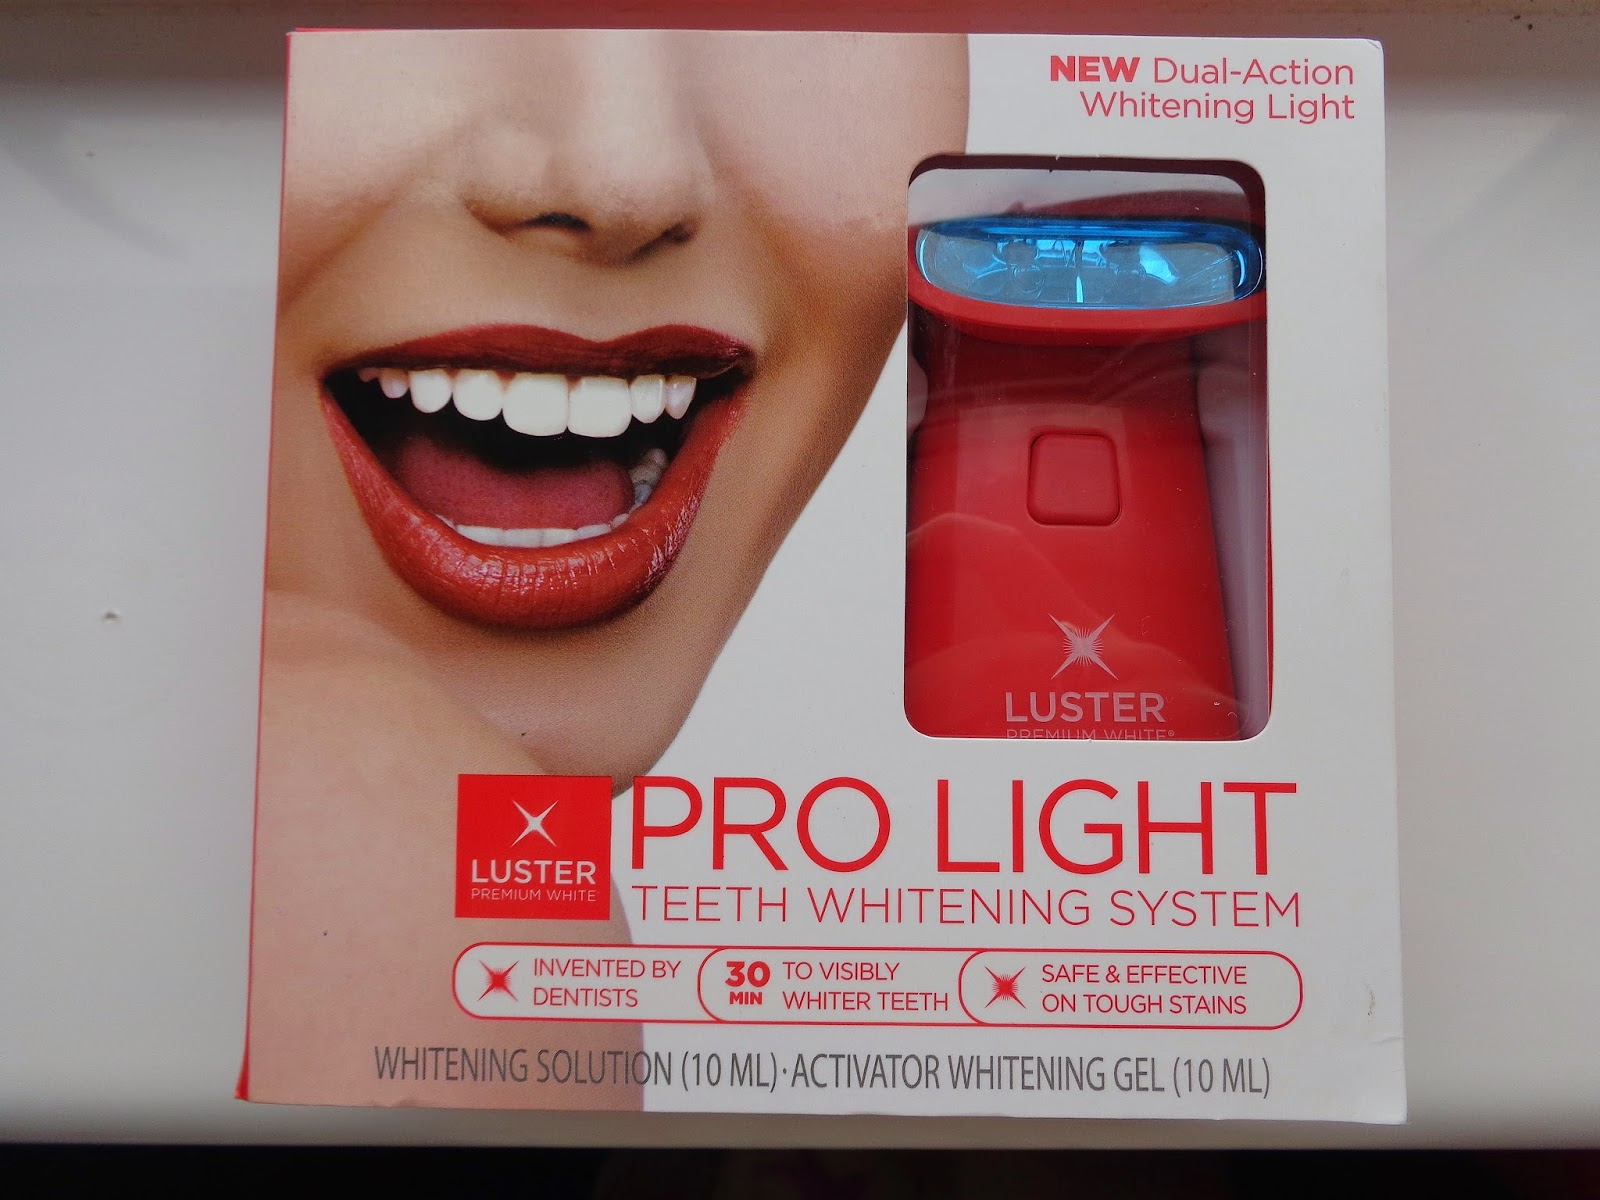 luster pro light teeth whitening system review jenna suth. Black Bedroom Furniture Sets. Home Design Ideas